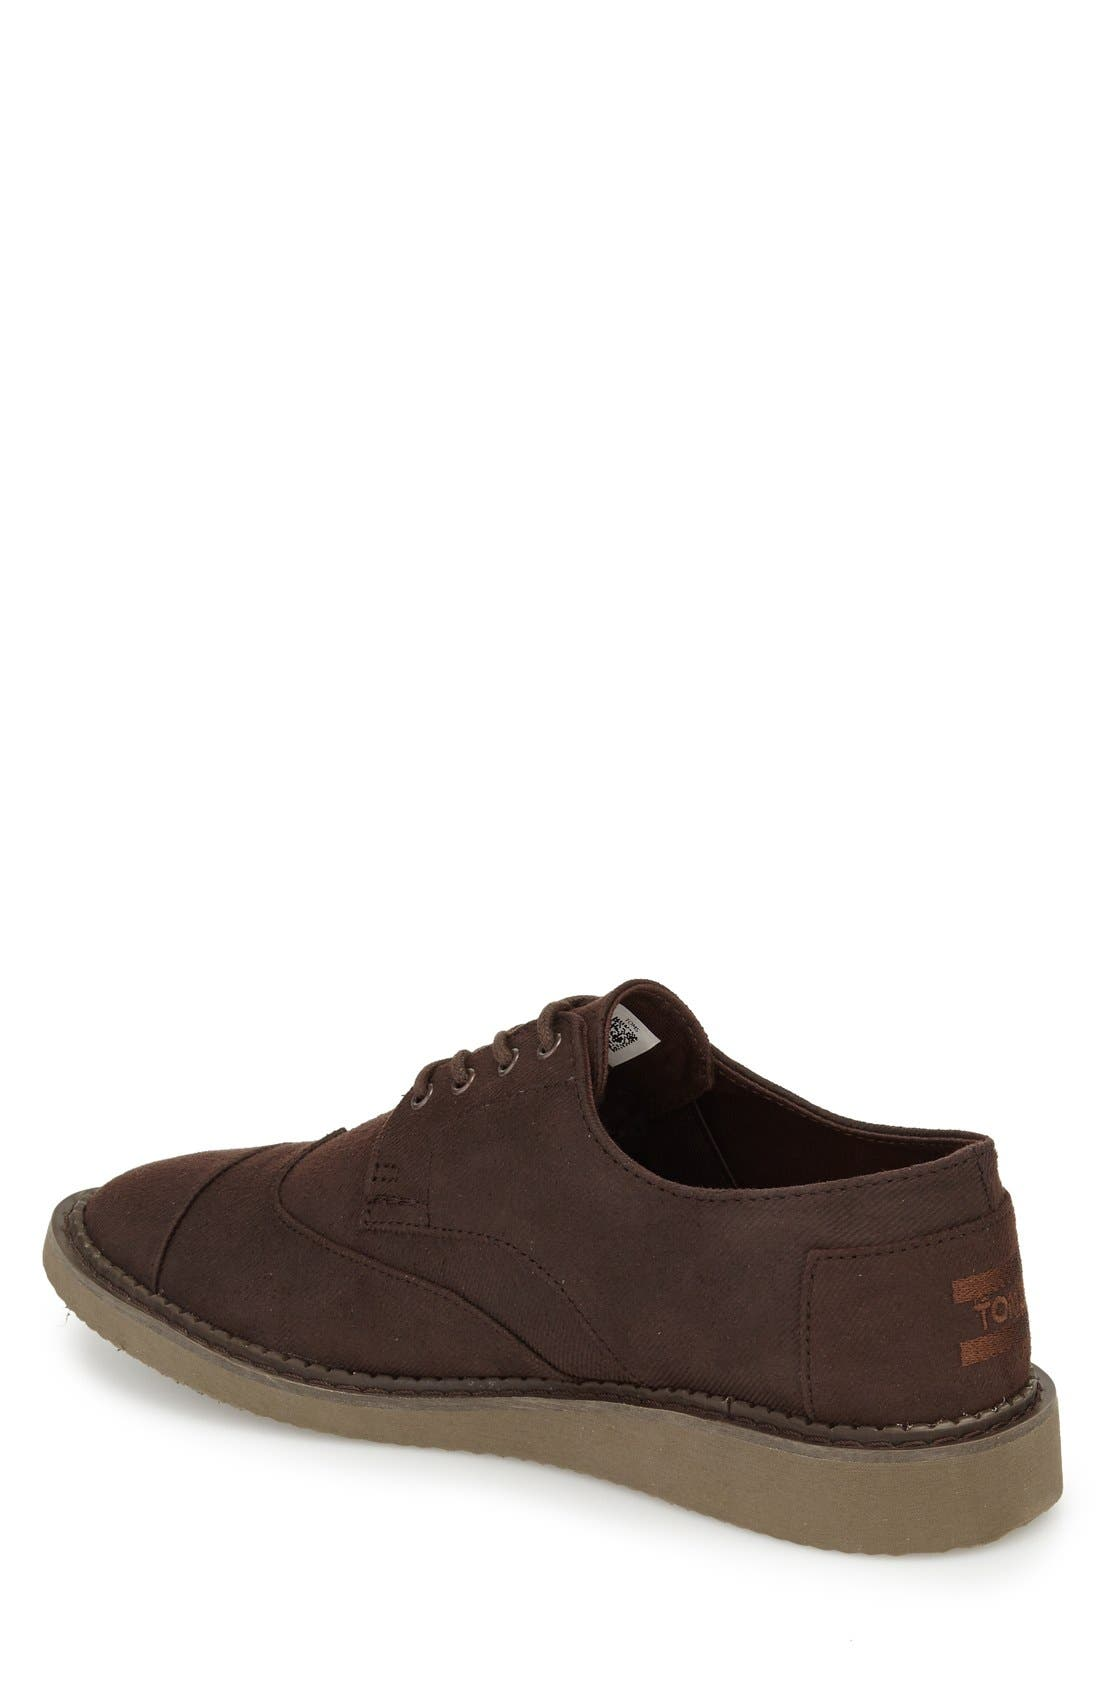 'Classic Brogue' Cotton Twill Derby,                             Alternate thumbnail 40, color,